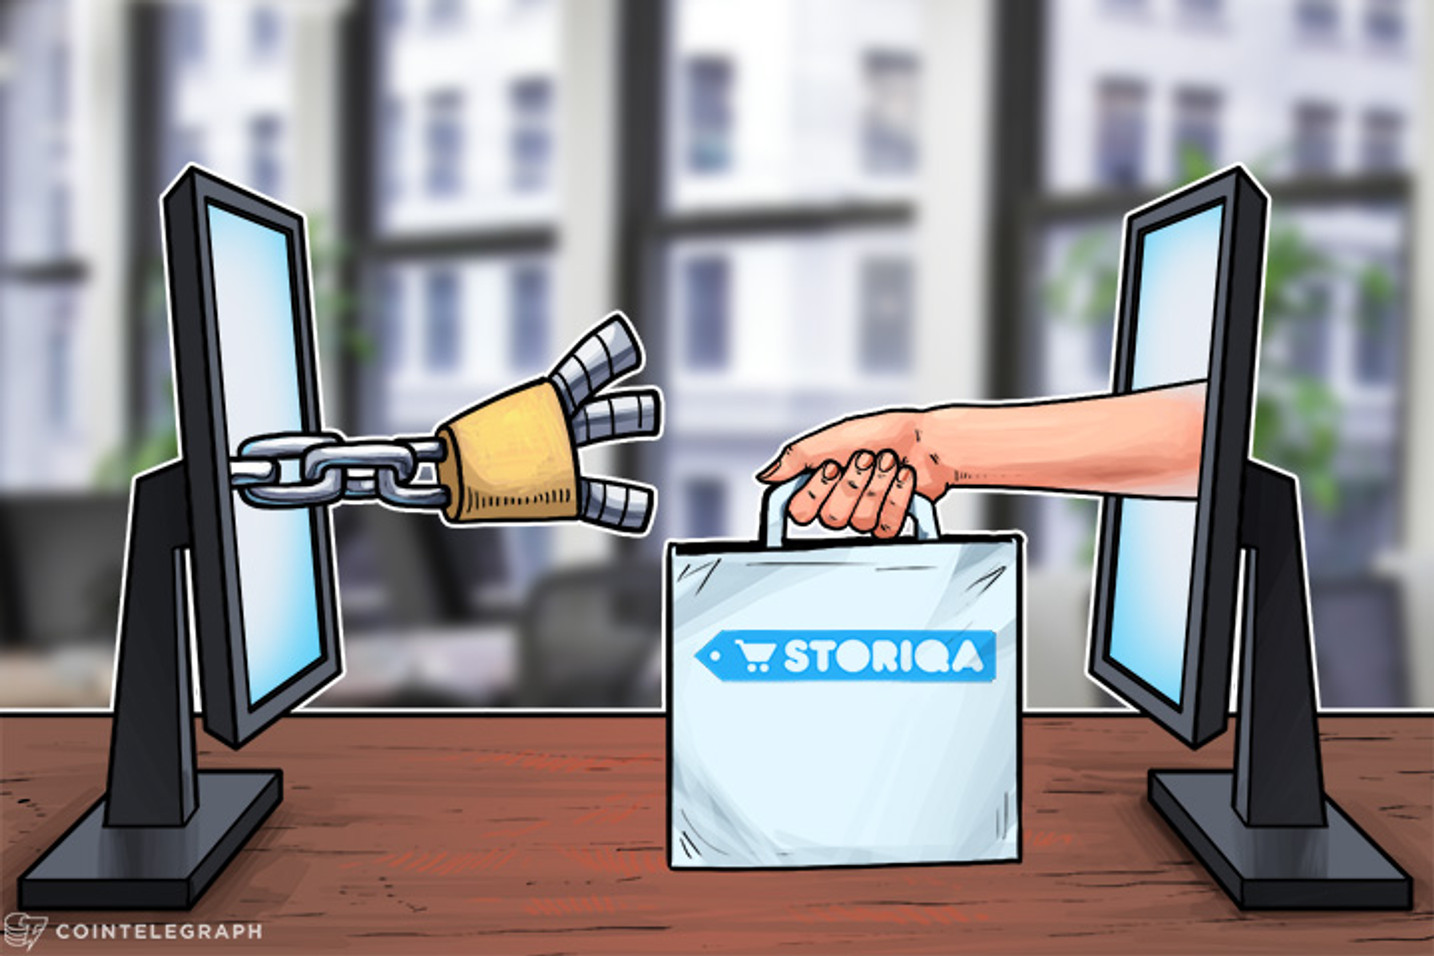 Storiqa to Let Anyone Build an Online Marketplace Using Blockchain